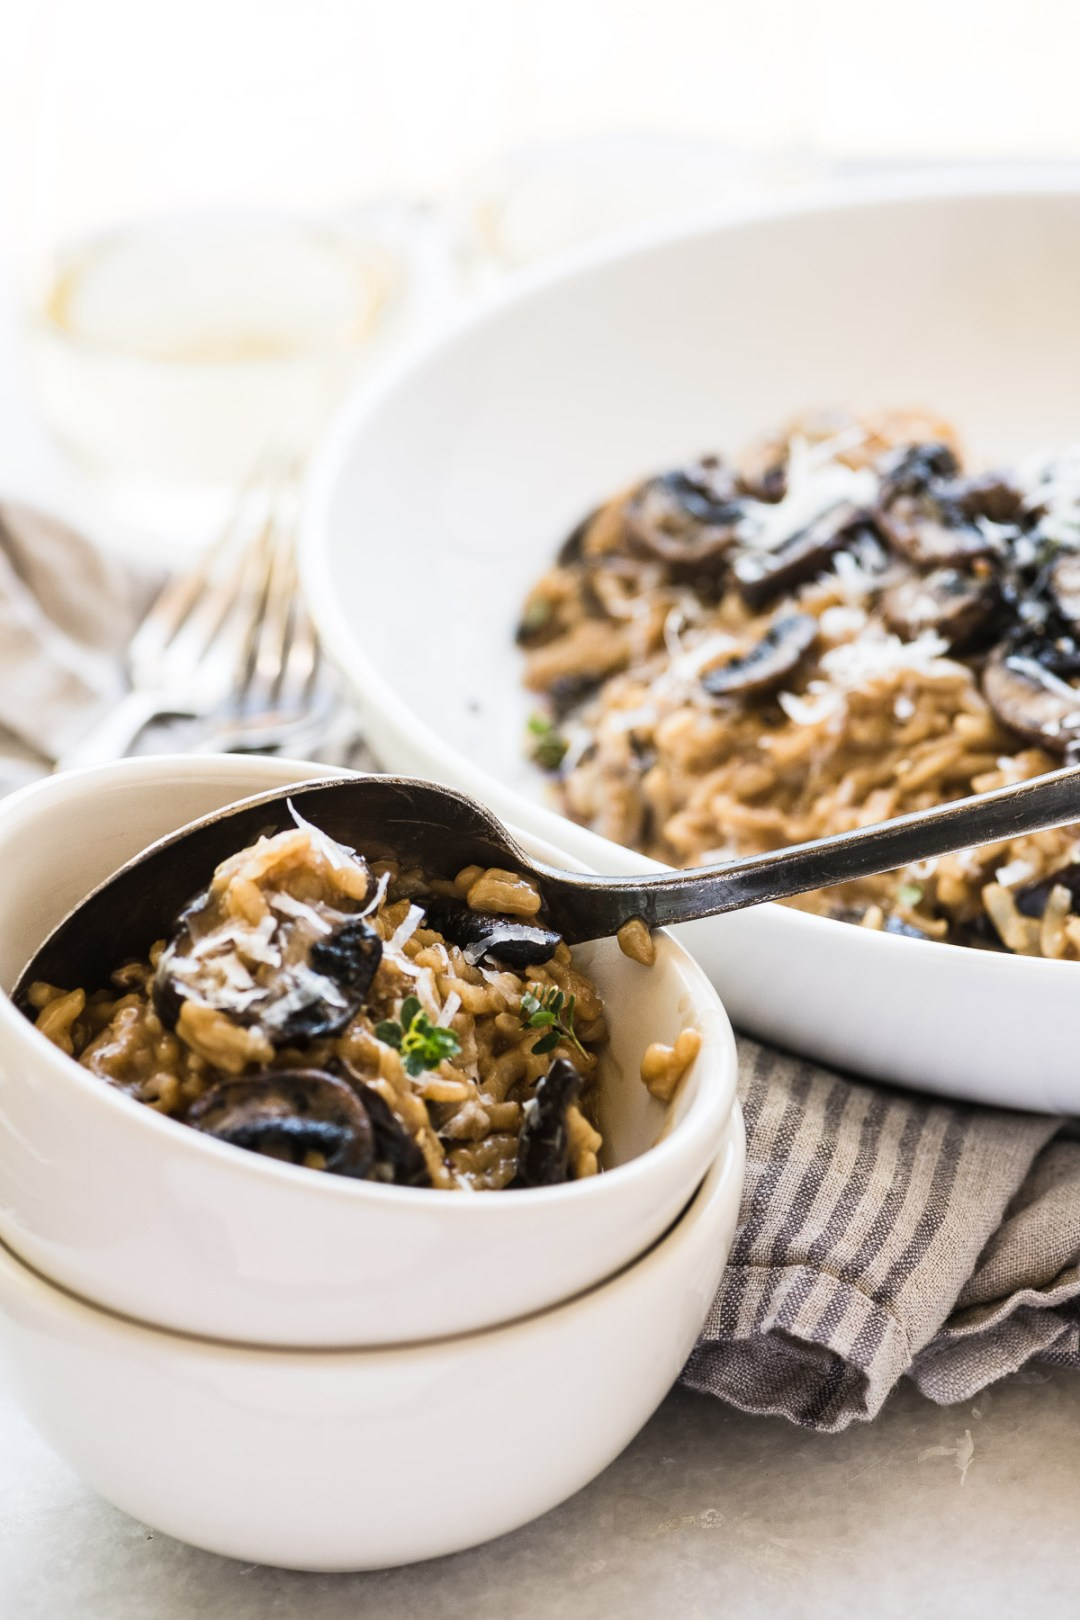 Instant Pot Wild Mushroom Risotto being spooned into a small white bowl